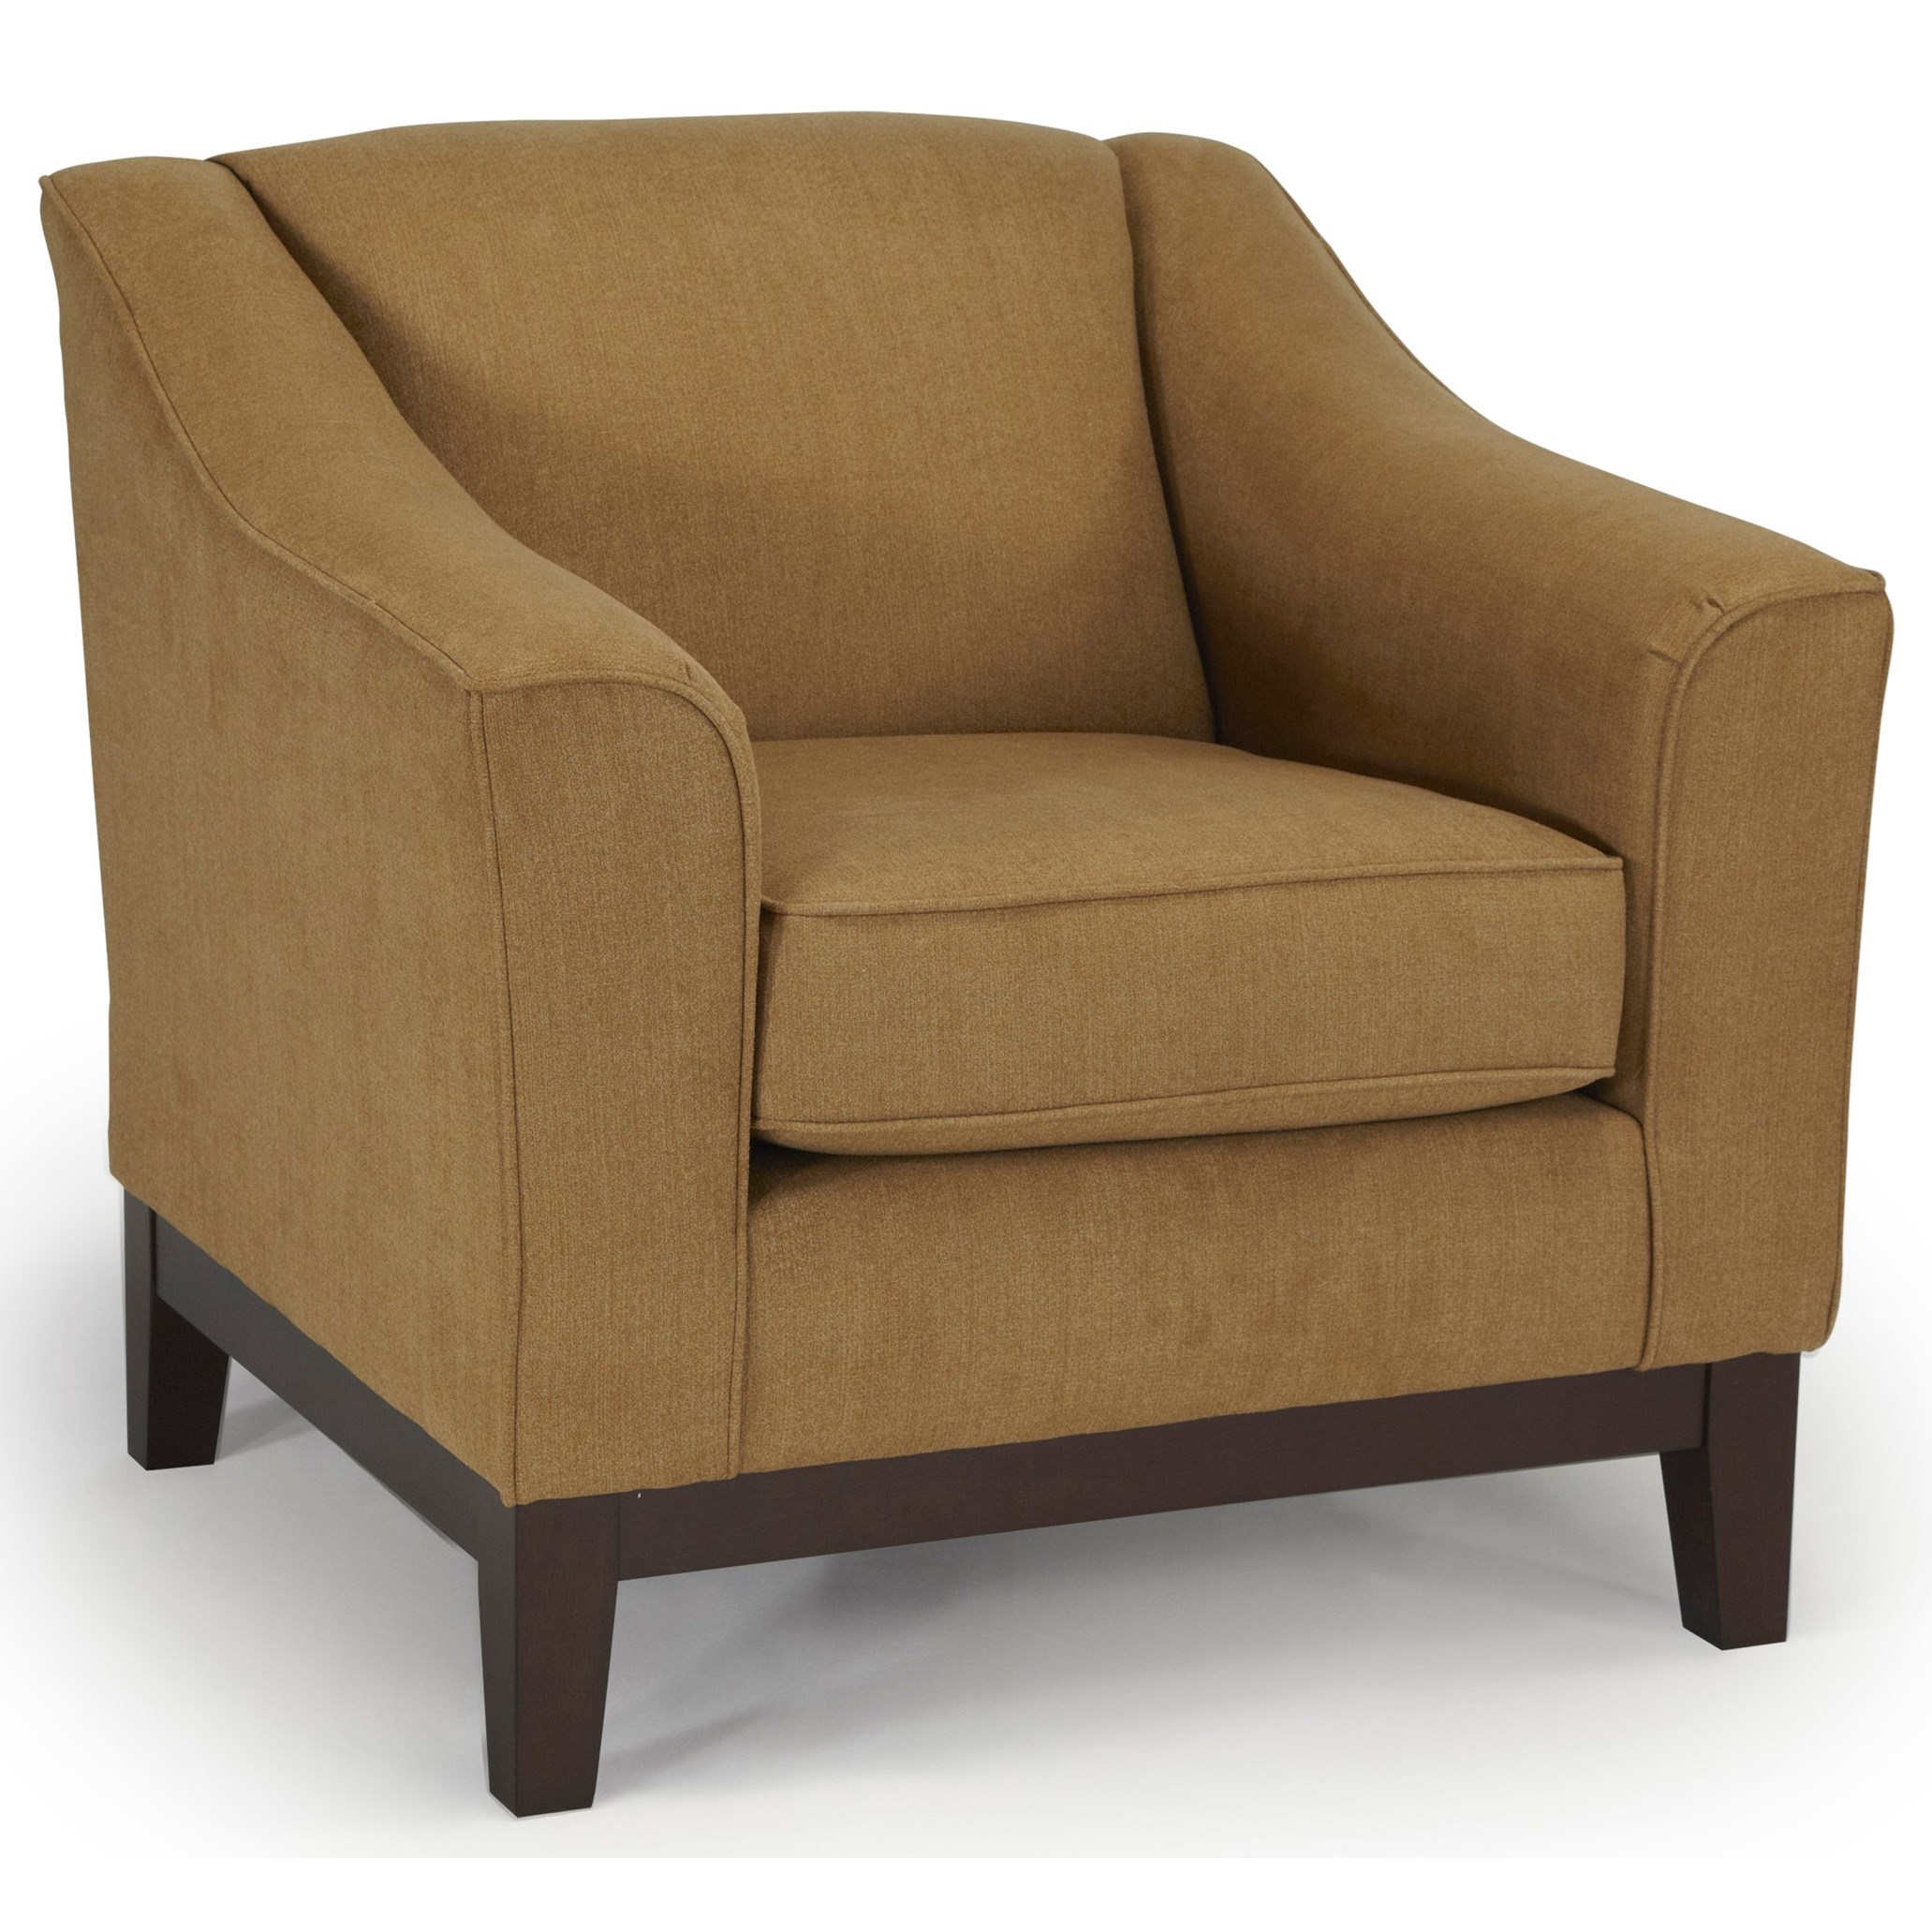 Best Home Furnishings Emeline Custom Chair - Item Number: C92E